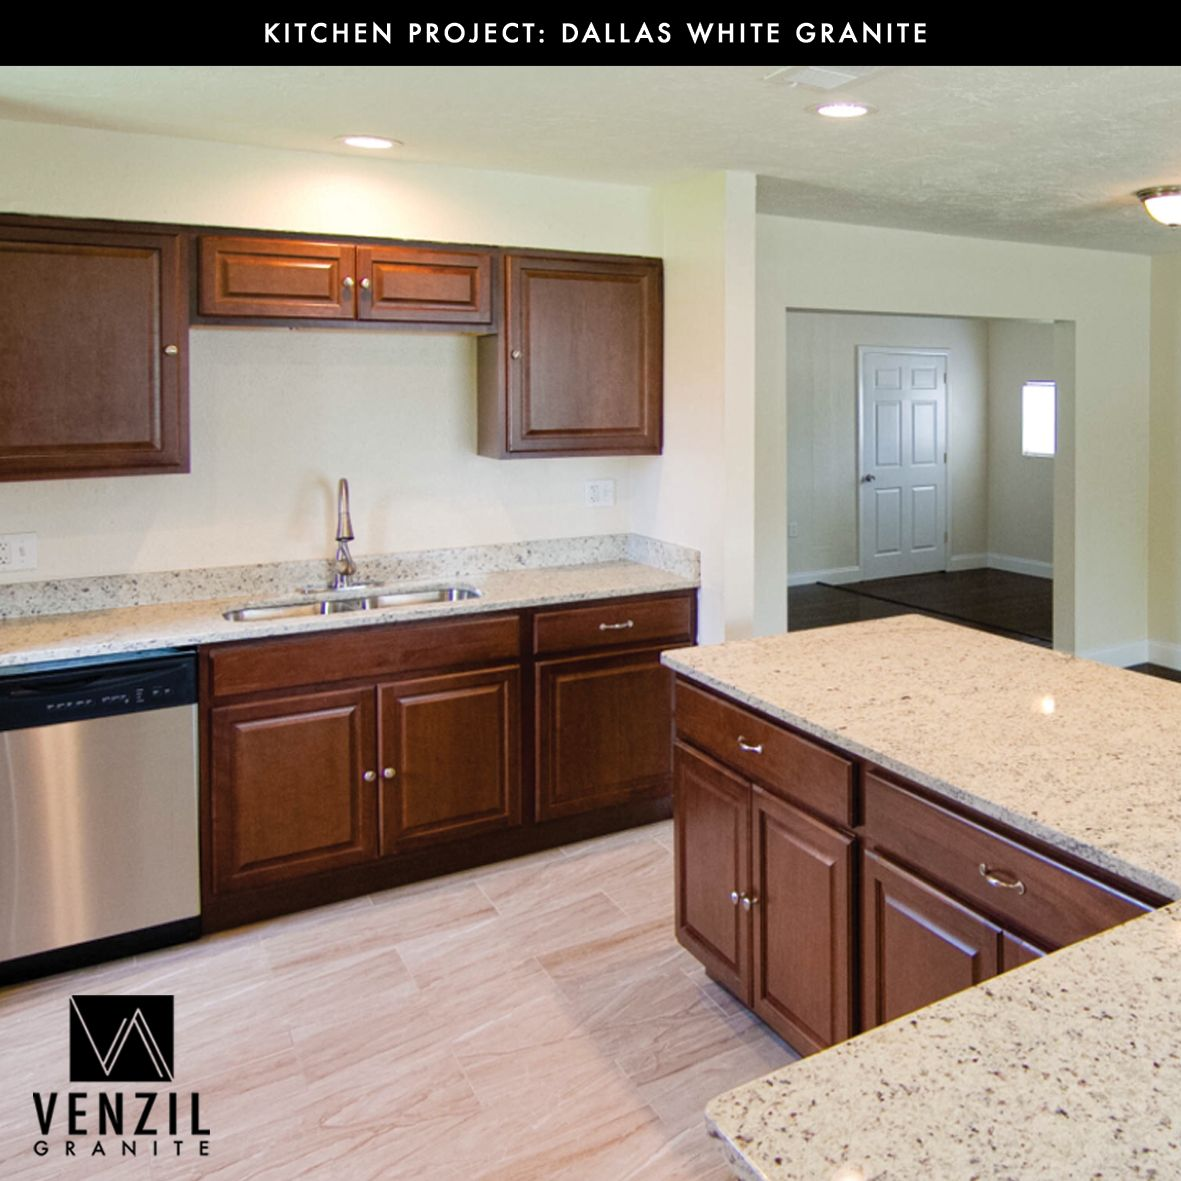 Dallas White Granite Countertops Kitchen Project Done By Team Venzil Contact Us We Fabricate And White Granite Countertops White Granite Granite Countertops